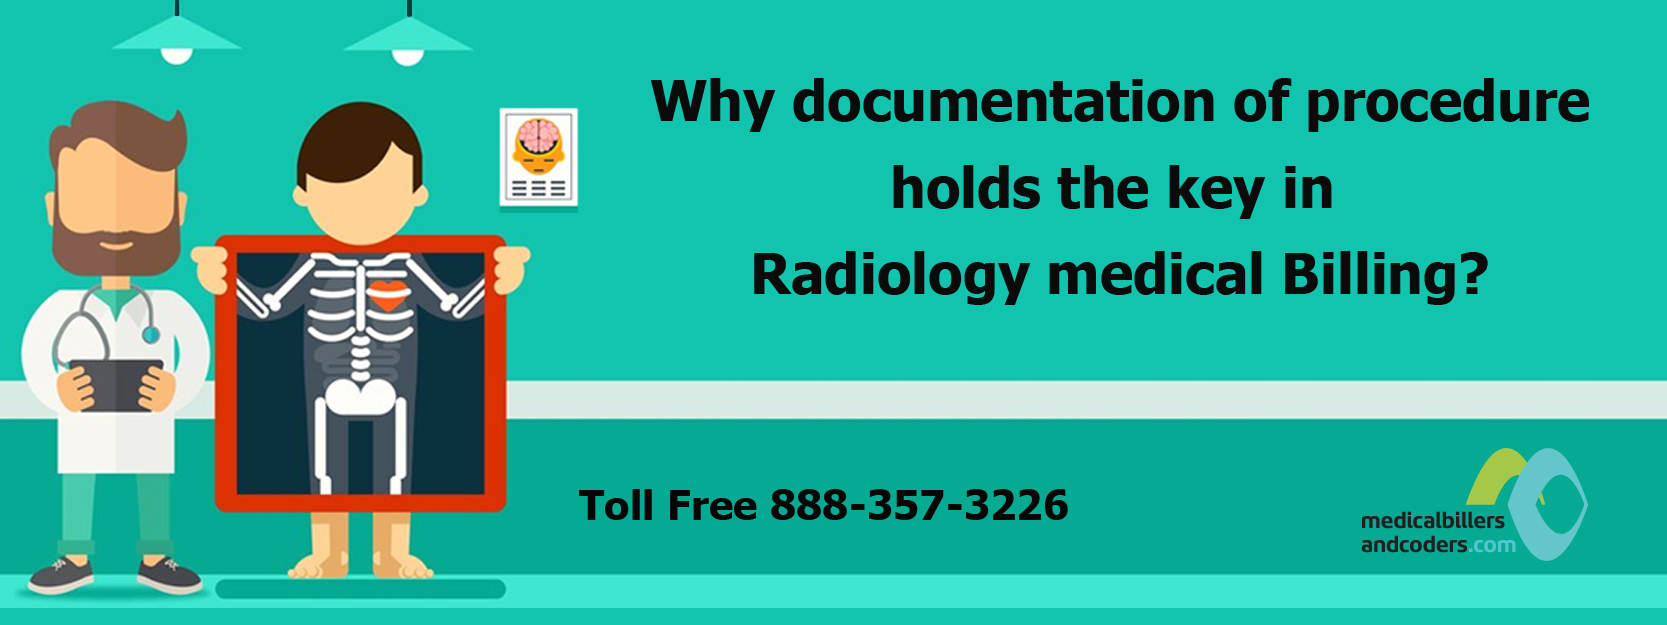 Why-documentation-of-procedure-holds-the-key-in-Radiology-medical-Billing